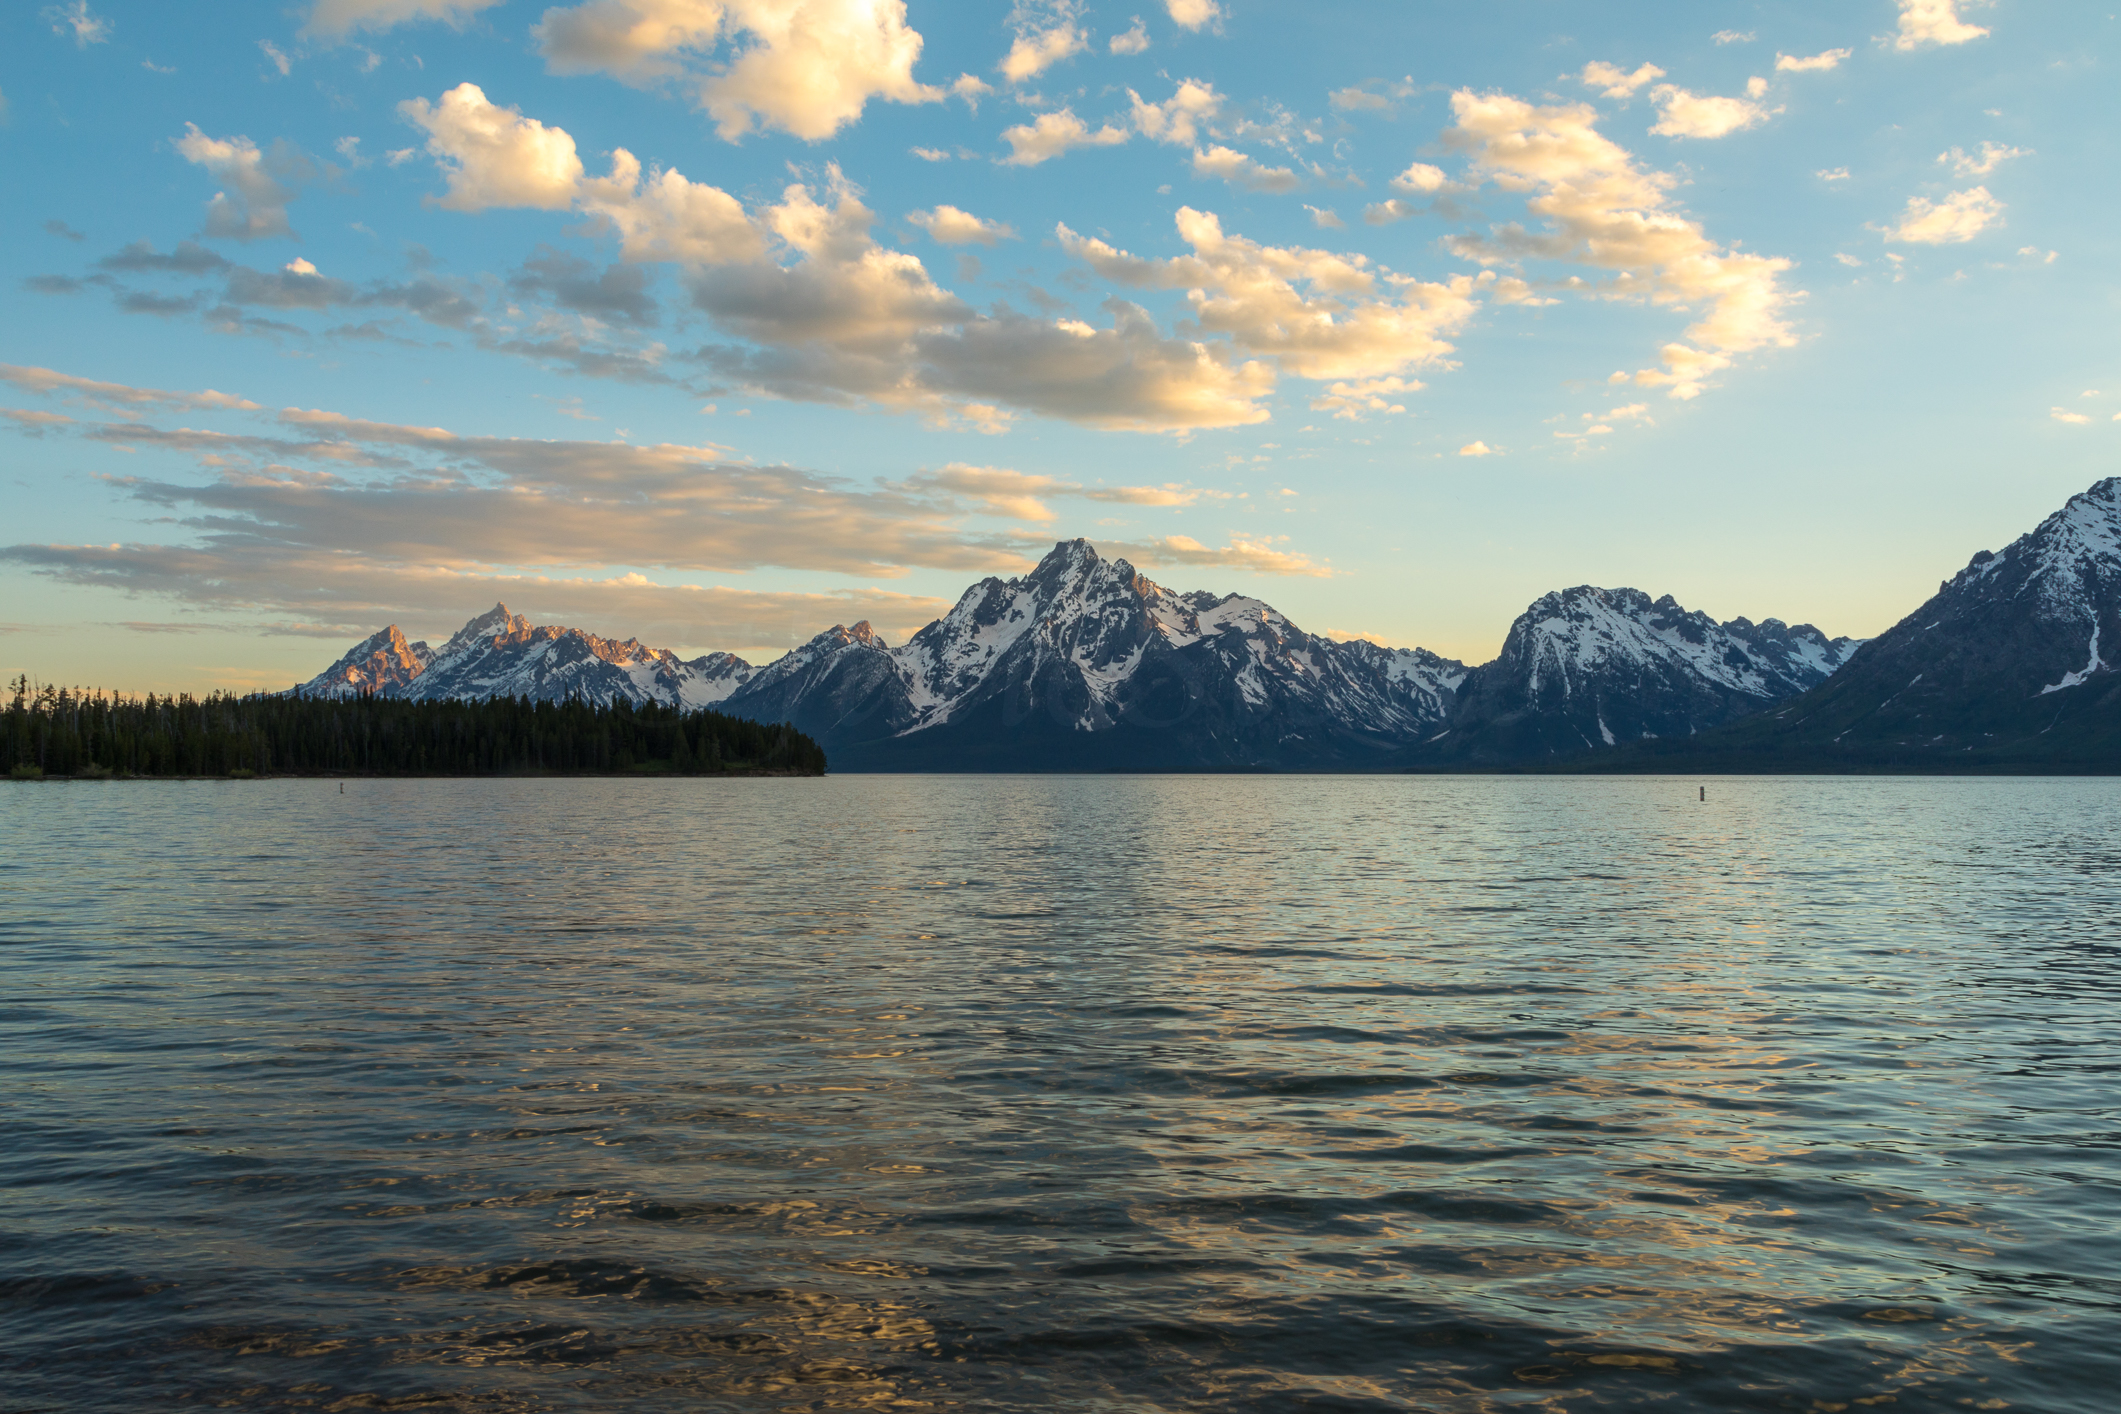 Colter Bay, Image # 3818